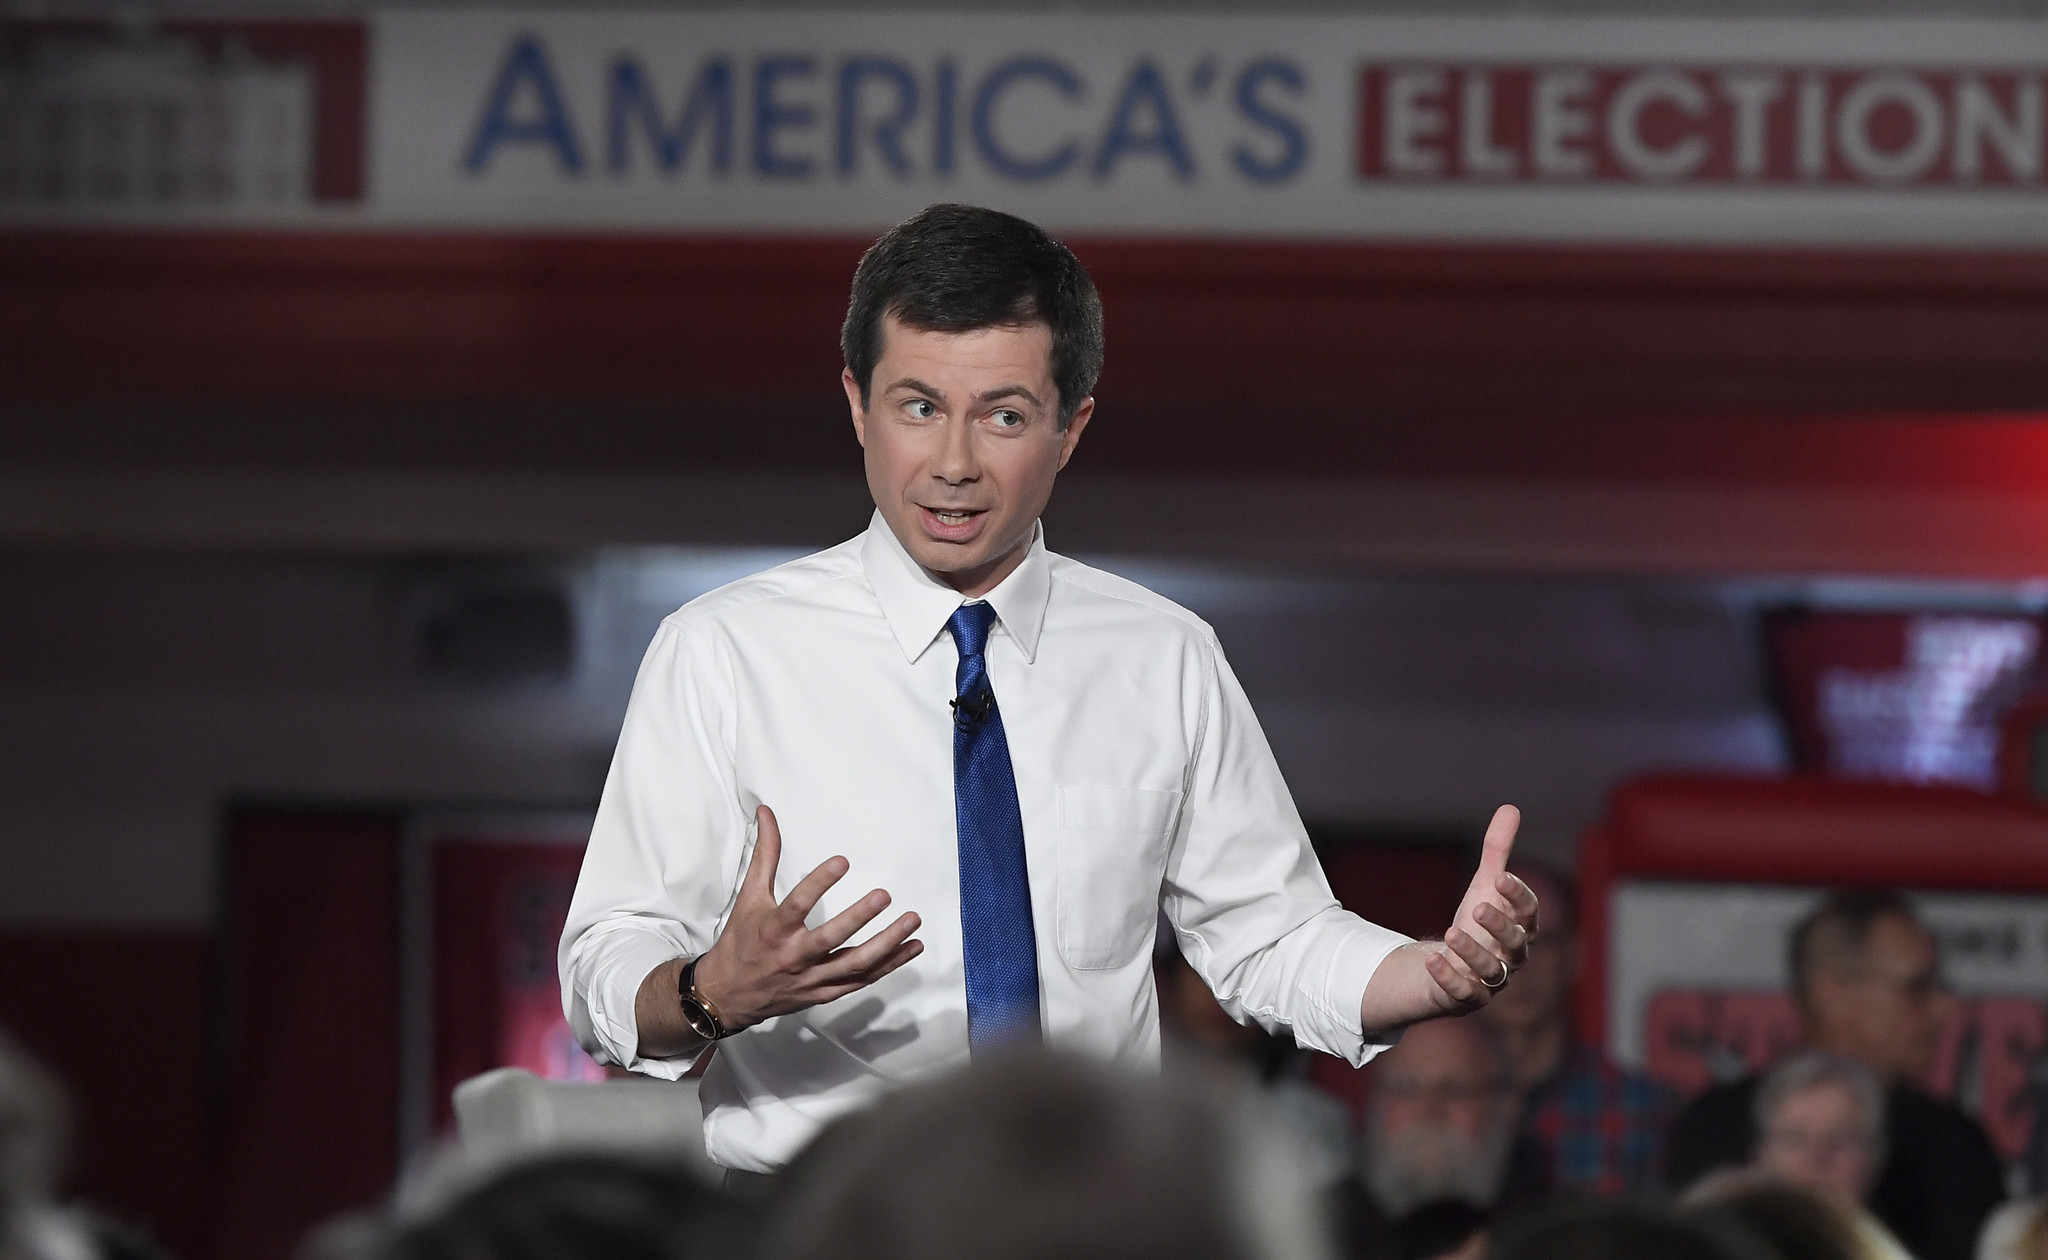 At Fox News town hall, Pete Buttigieg likens Trump's tweets to 'grotesque things'